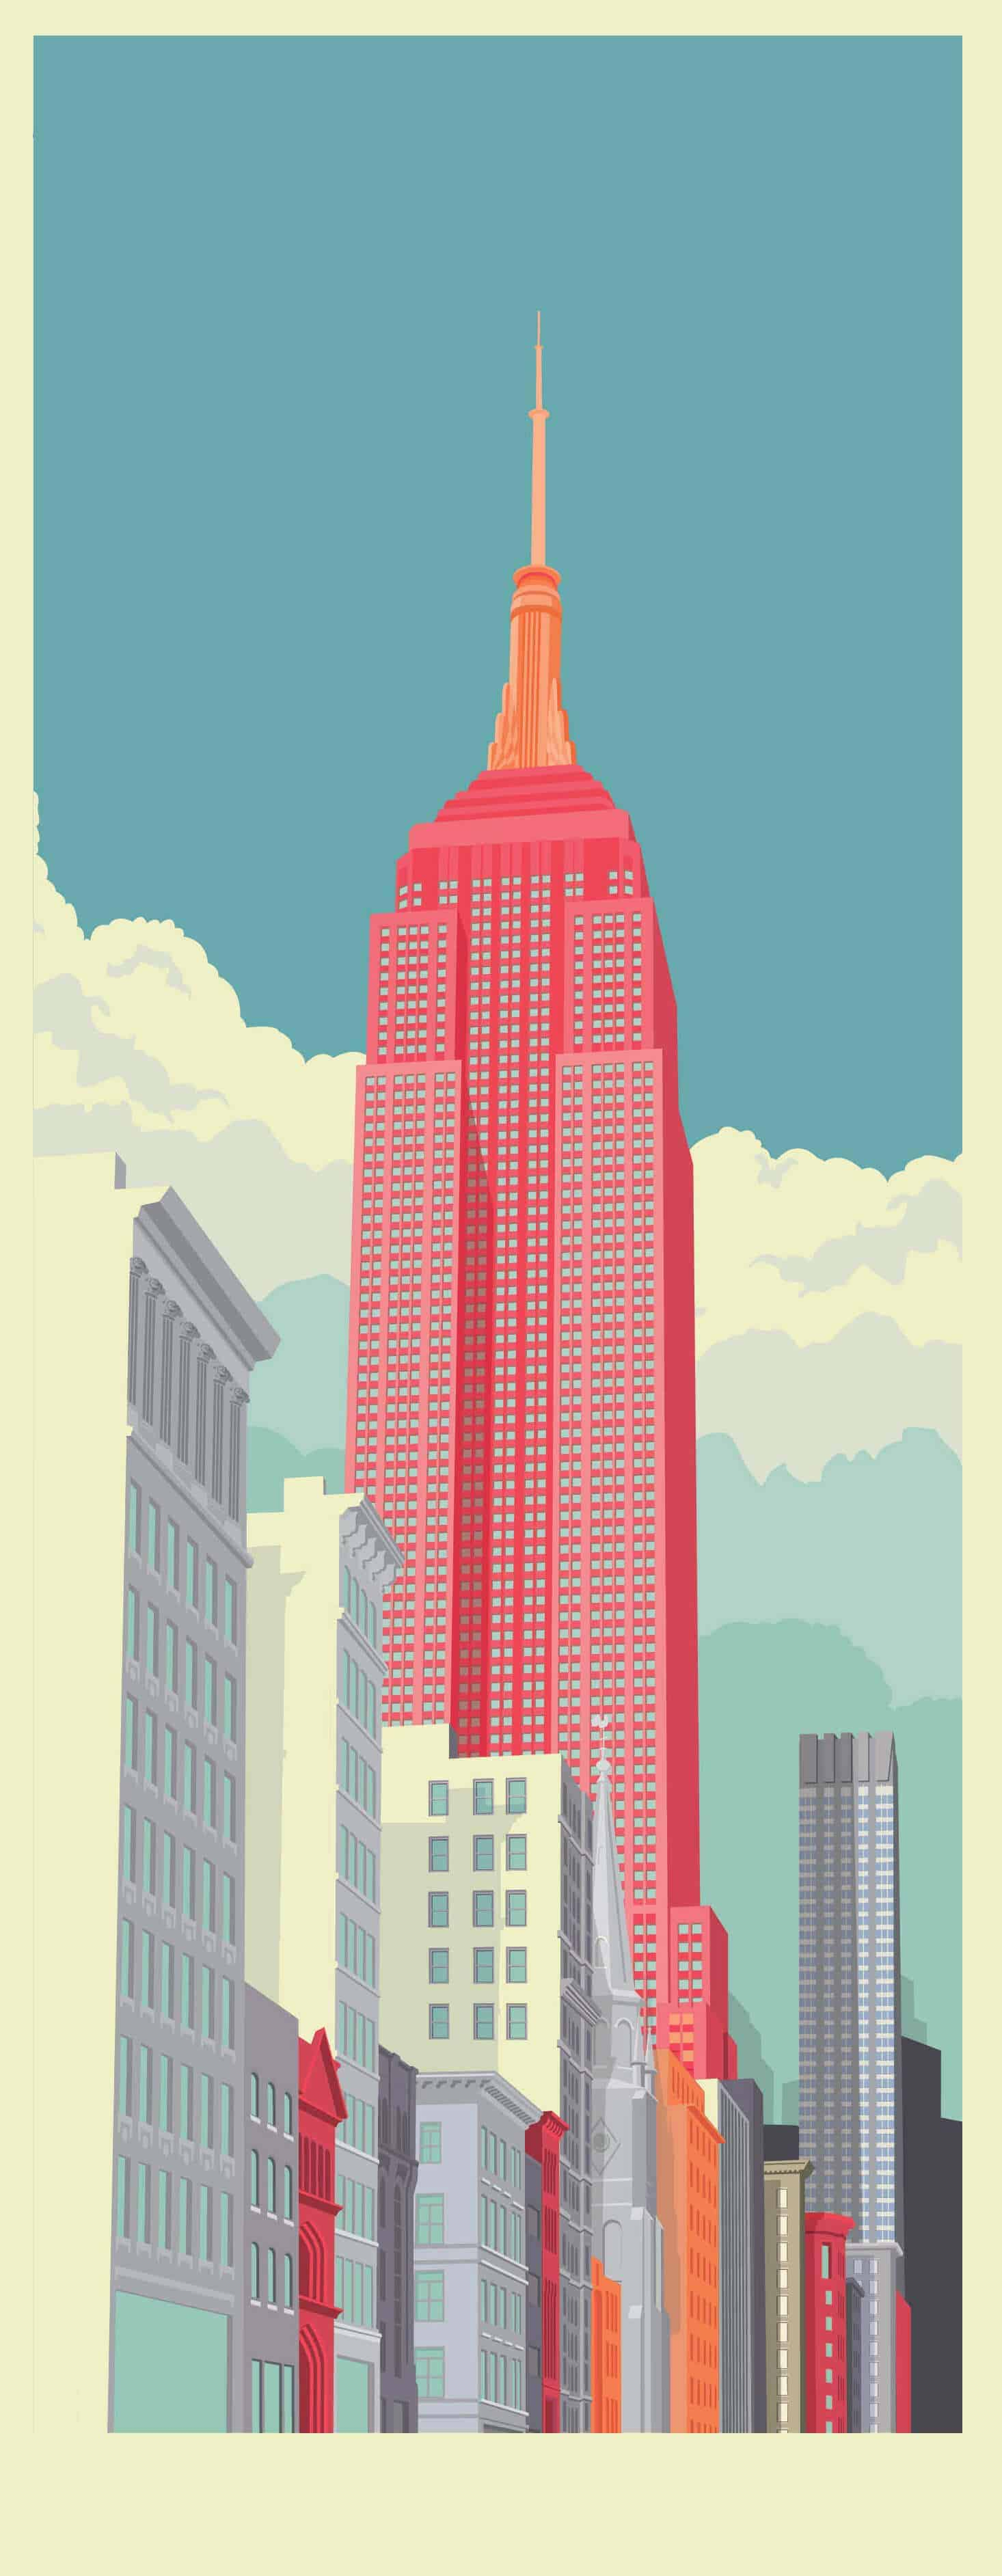 illustratie van New York